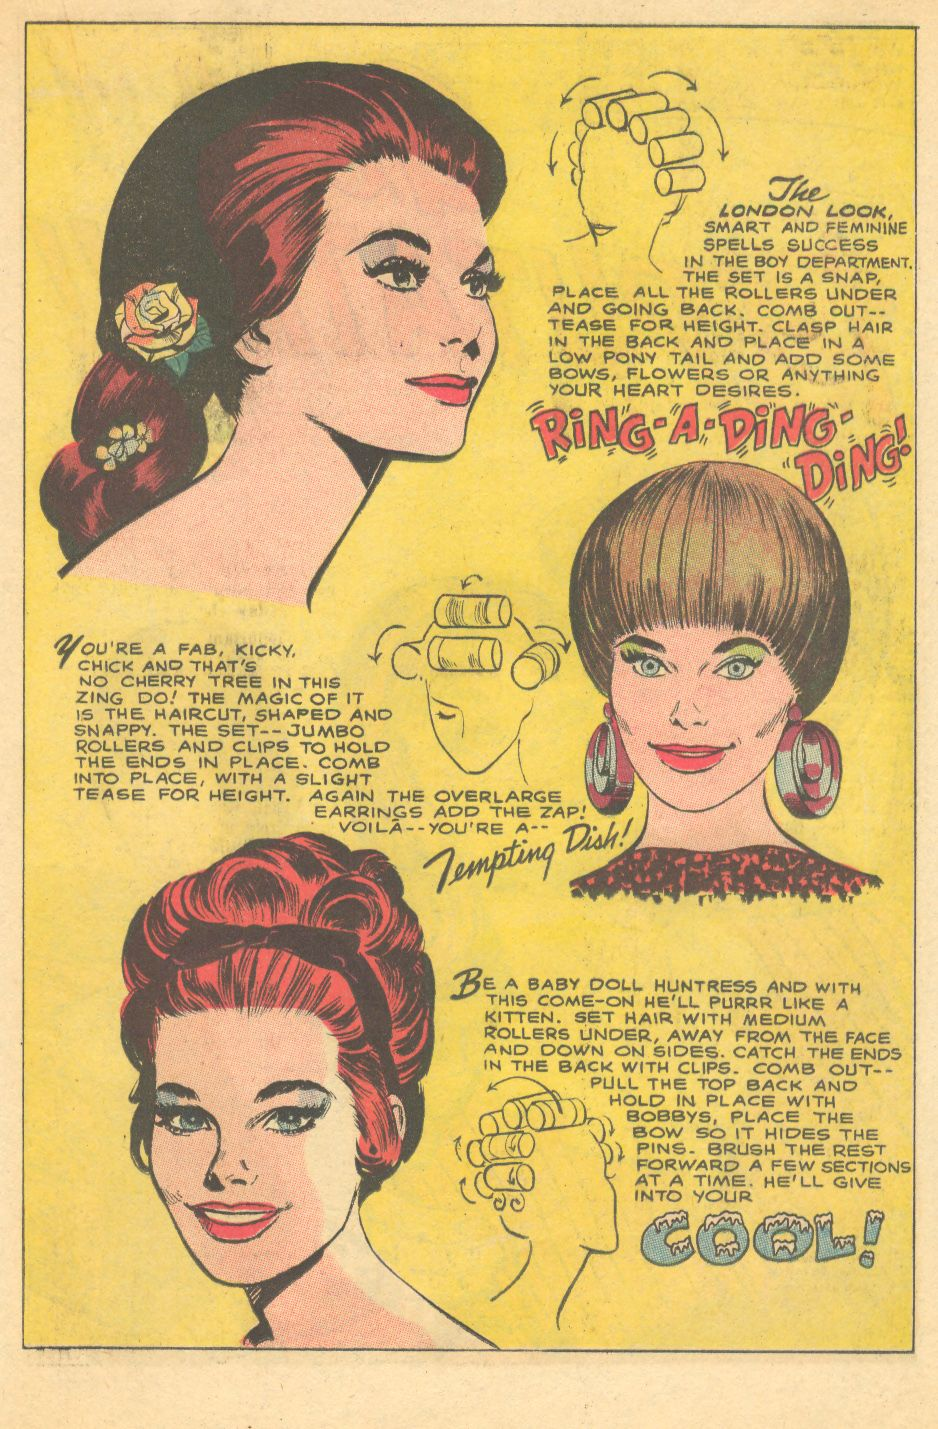 Mad mad modes for moderns mondays hair rollers psychedelic